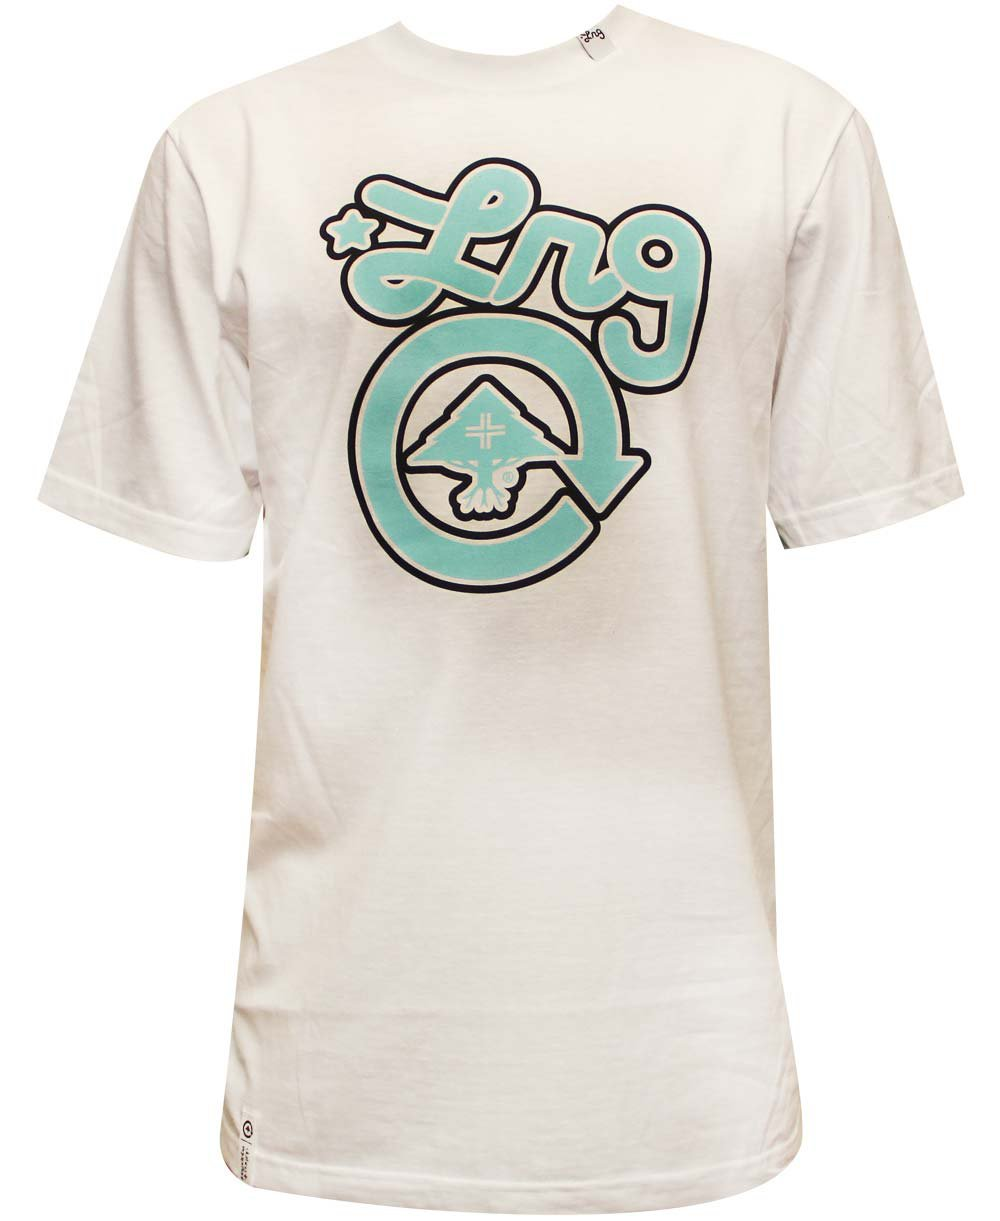 Lrg Core Collection One T-shirt White Blue